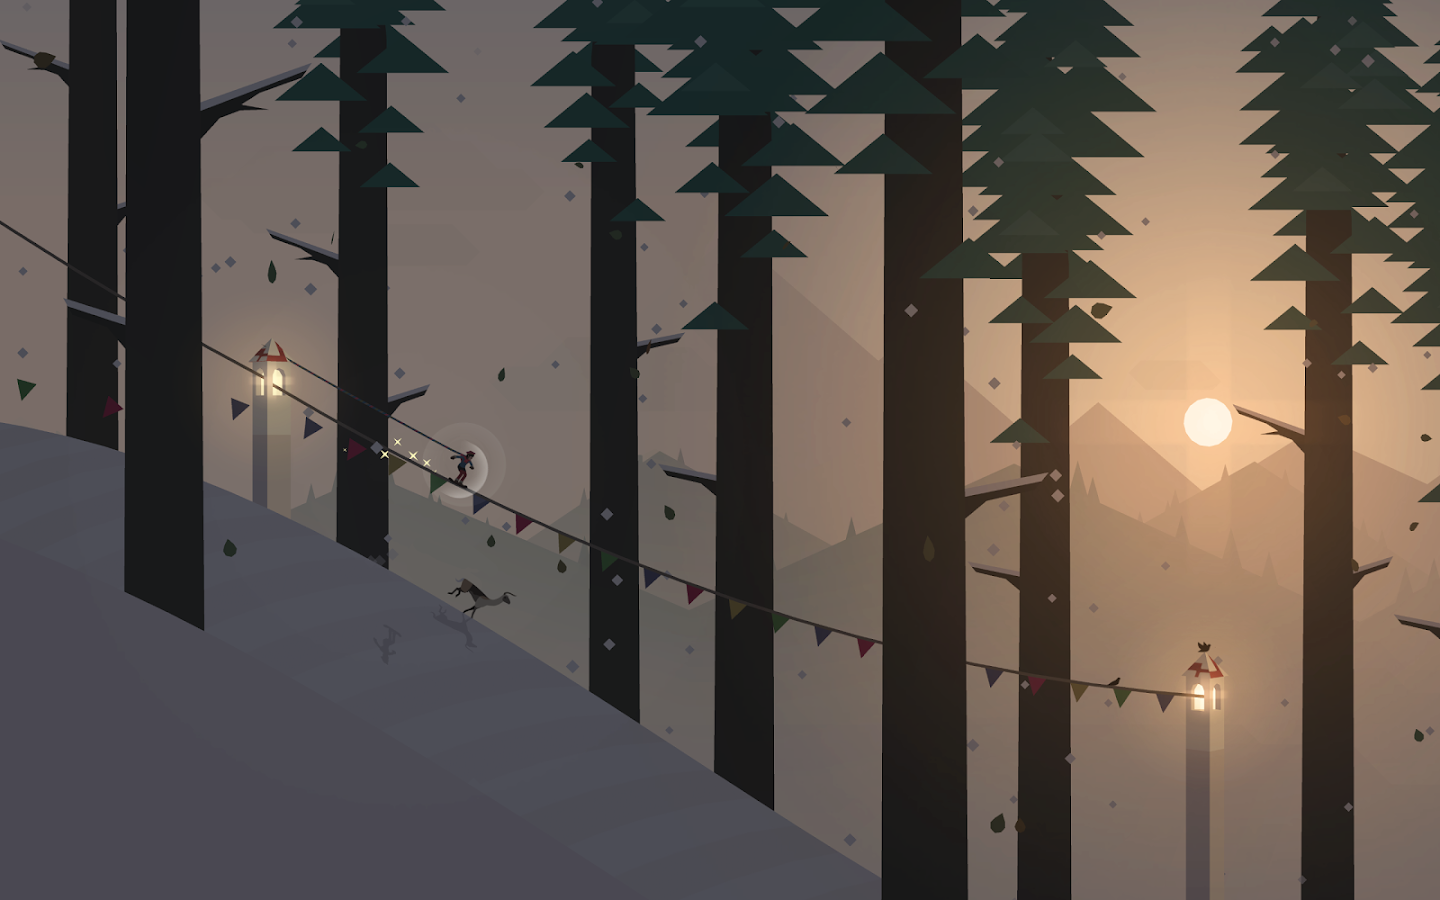 Alto's Adventure Screenshot 11